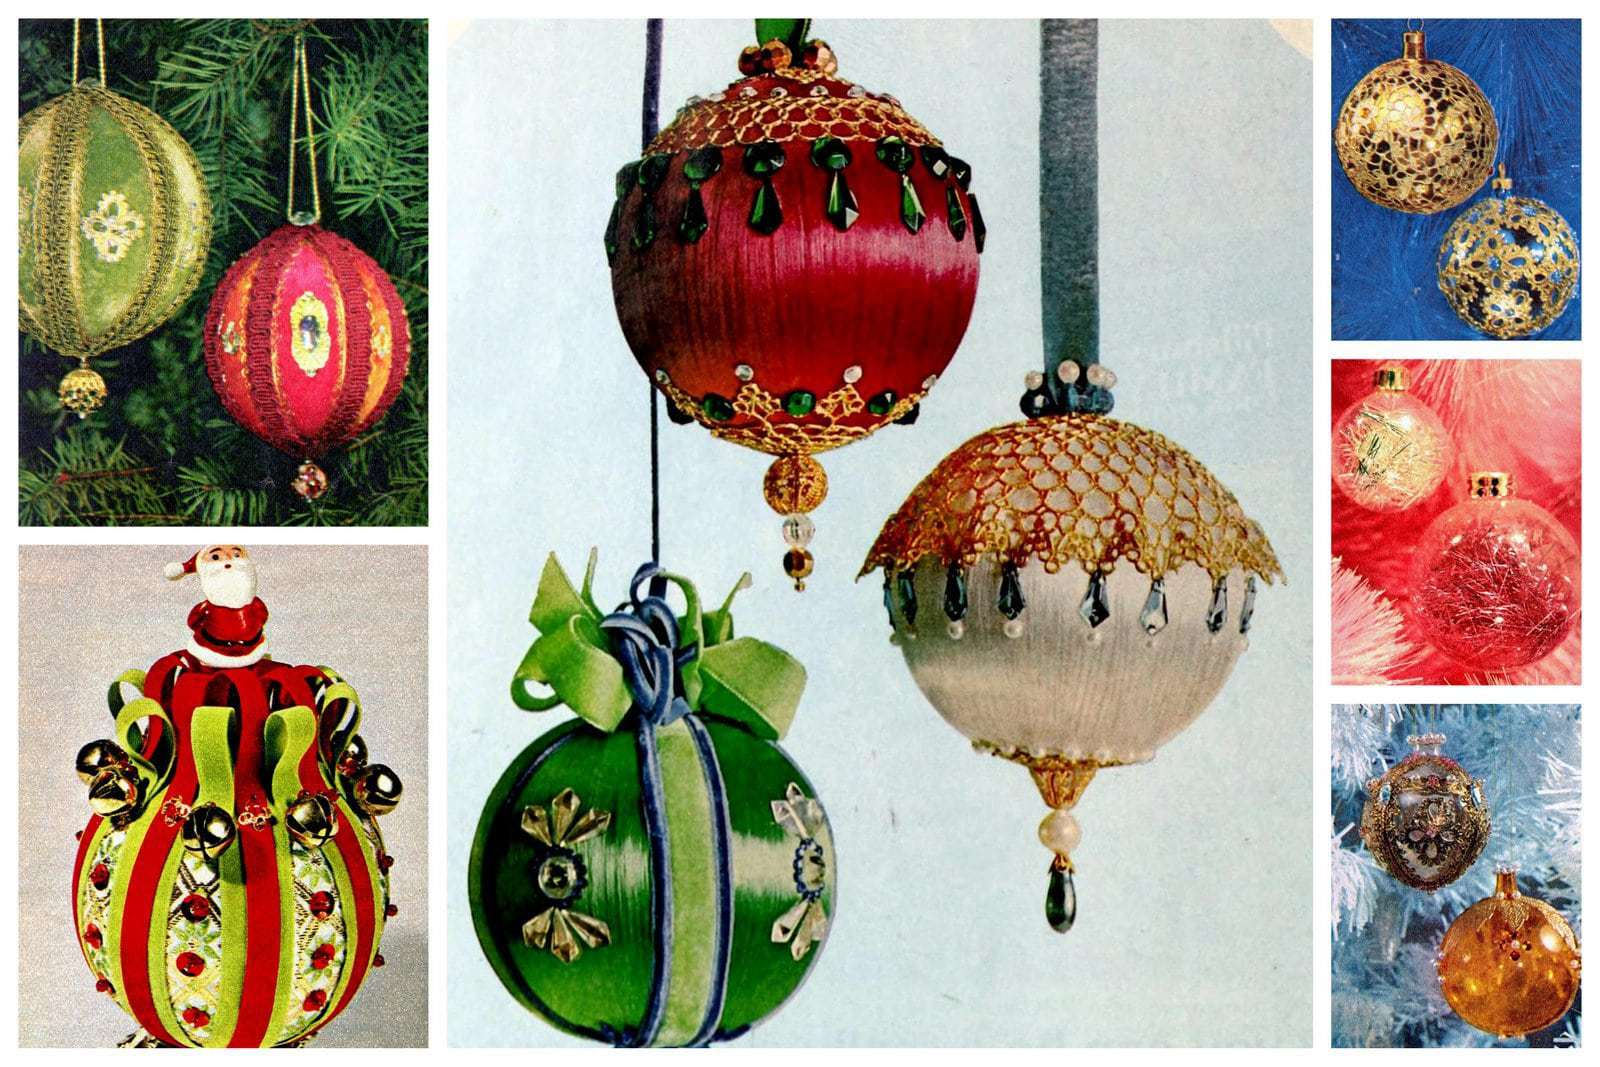 20 Retro Diy Christmas Ornament Craft Ideas From The 60s That Are Just As Awesome As Ever Click Americana